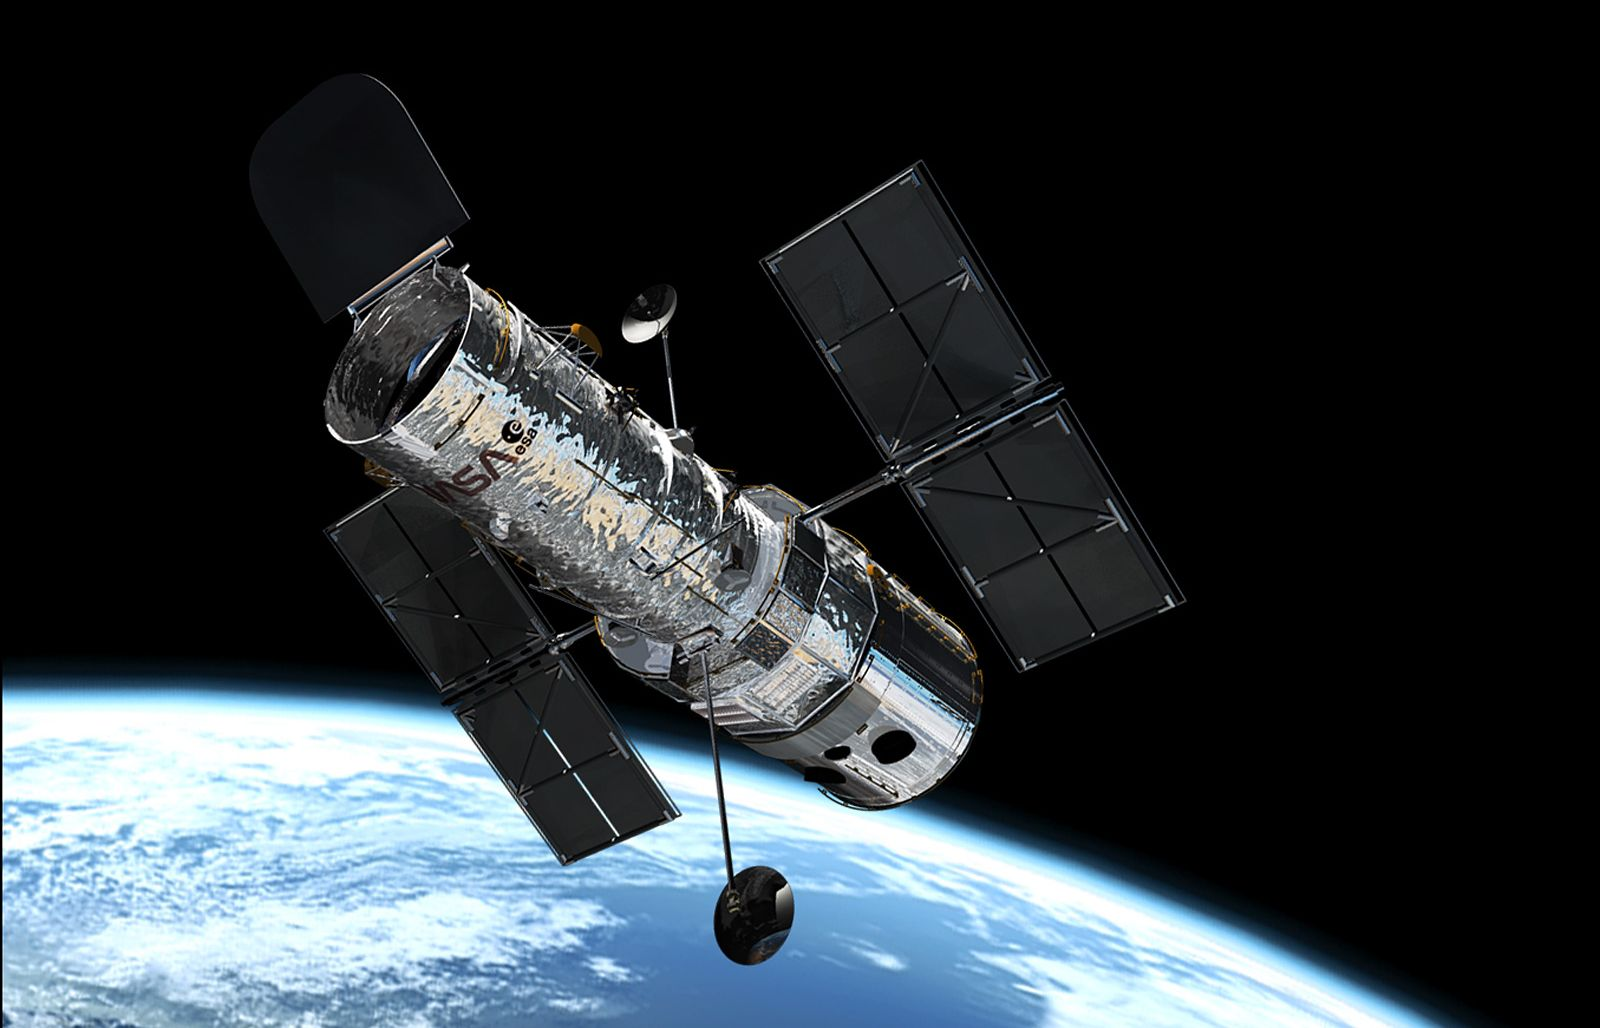 10 Big Space Problems Solved By Simple Fixes (With images